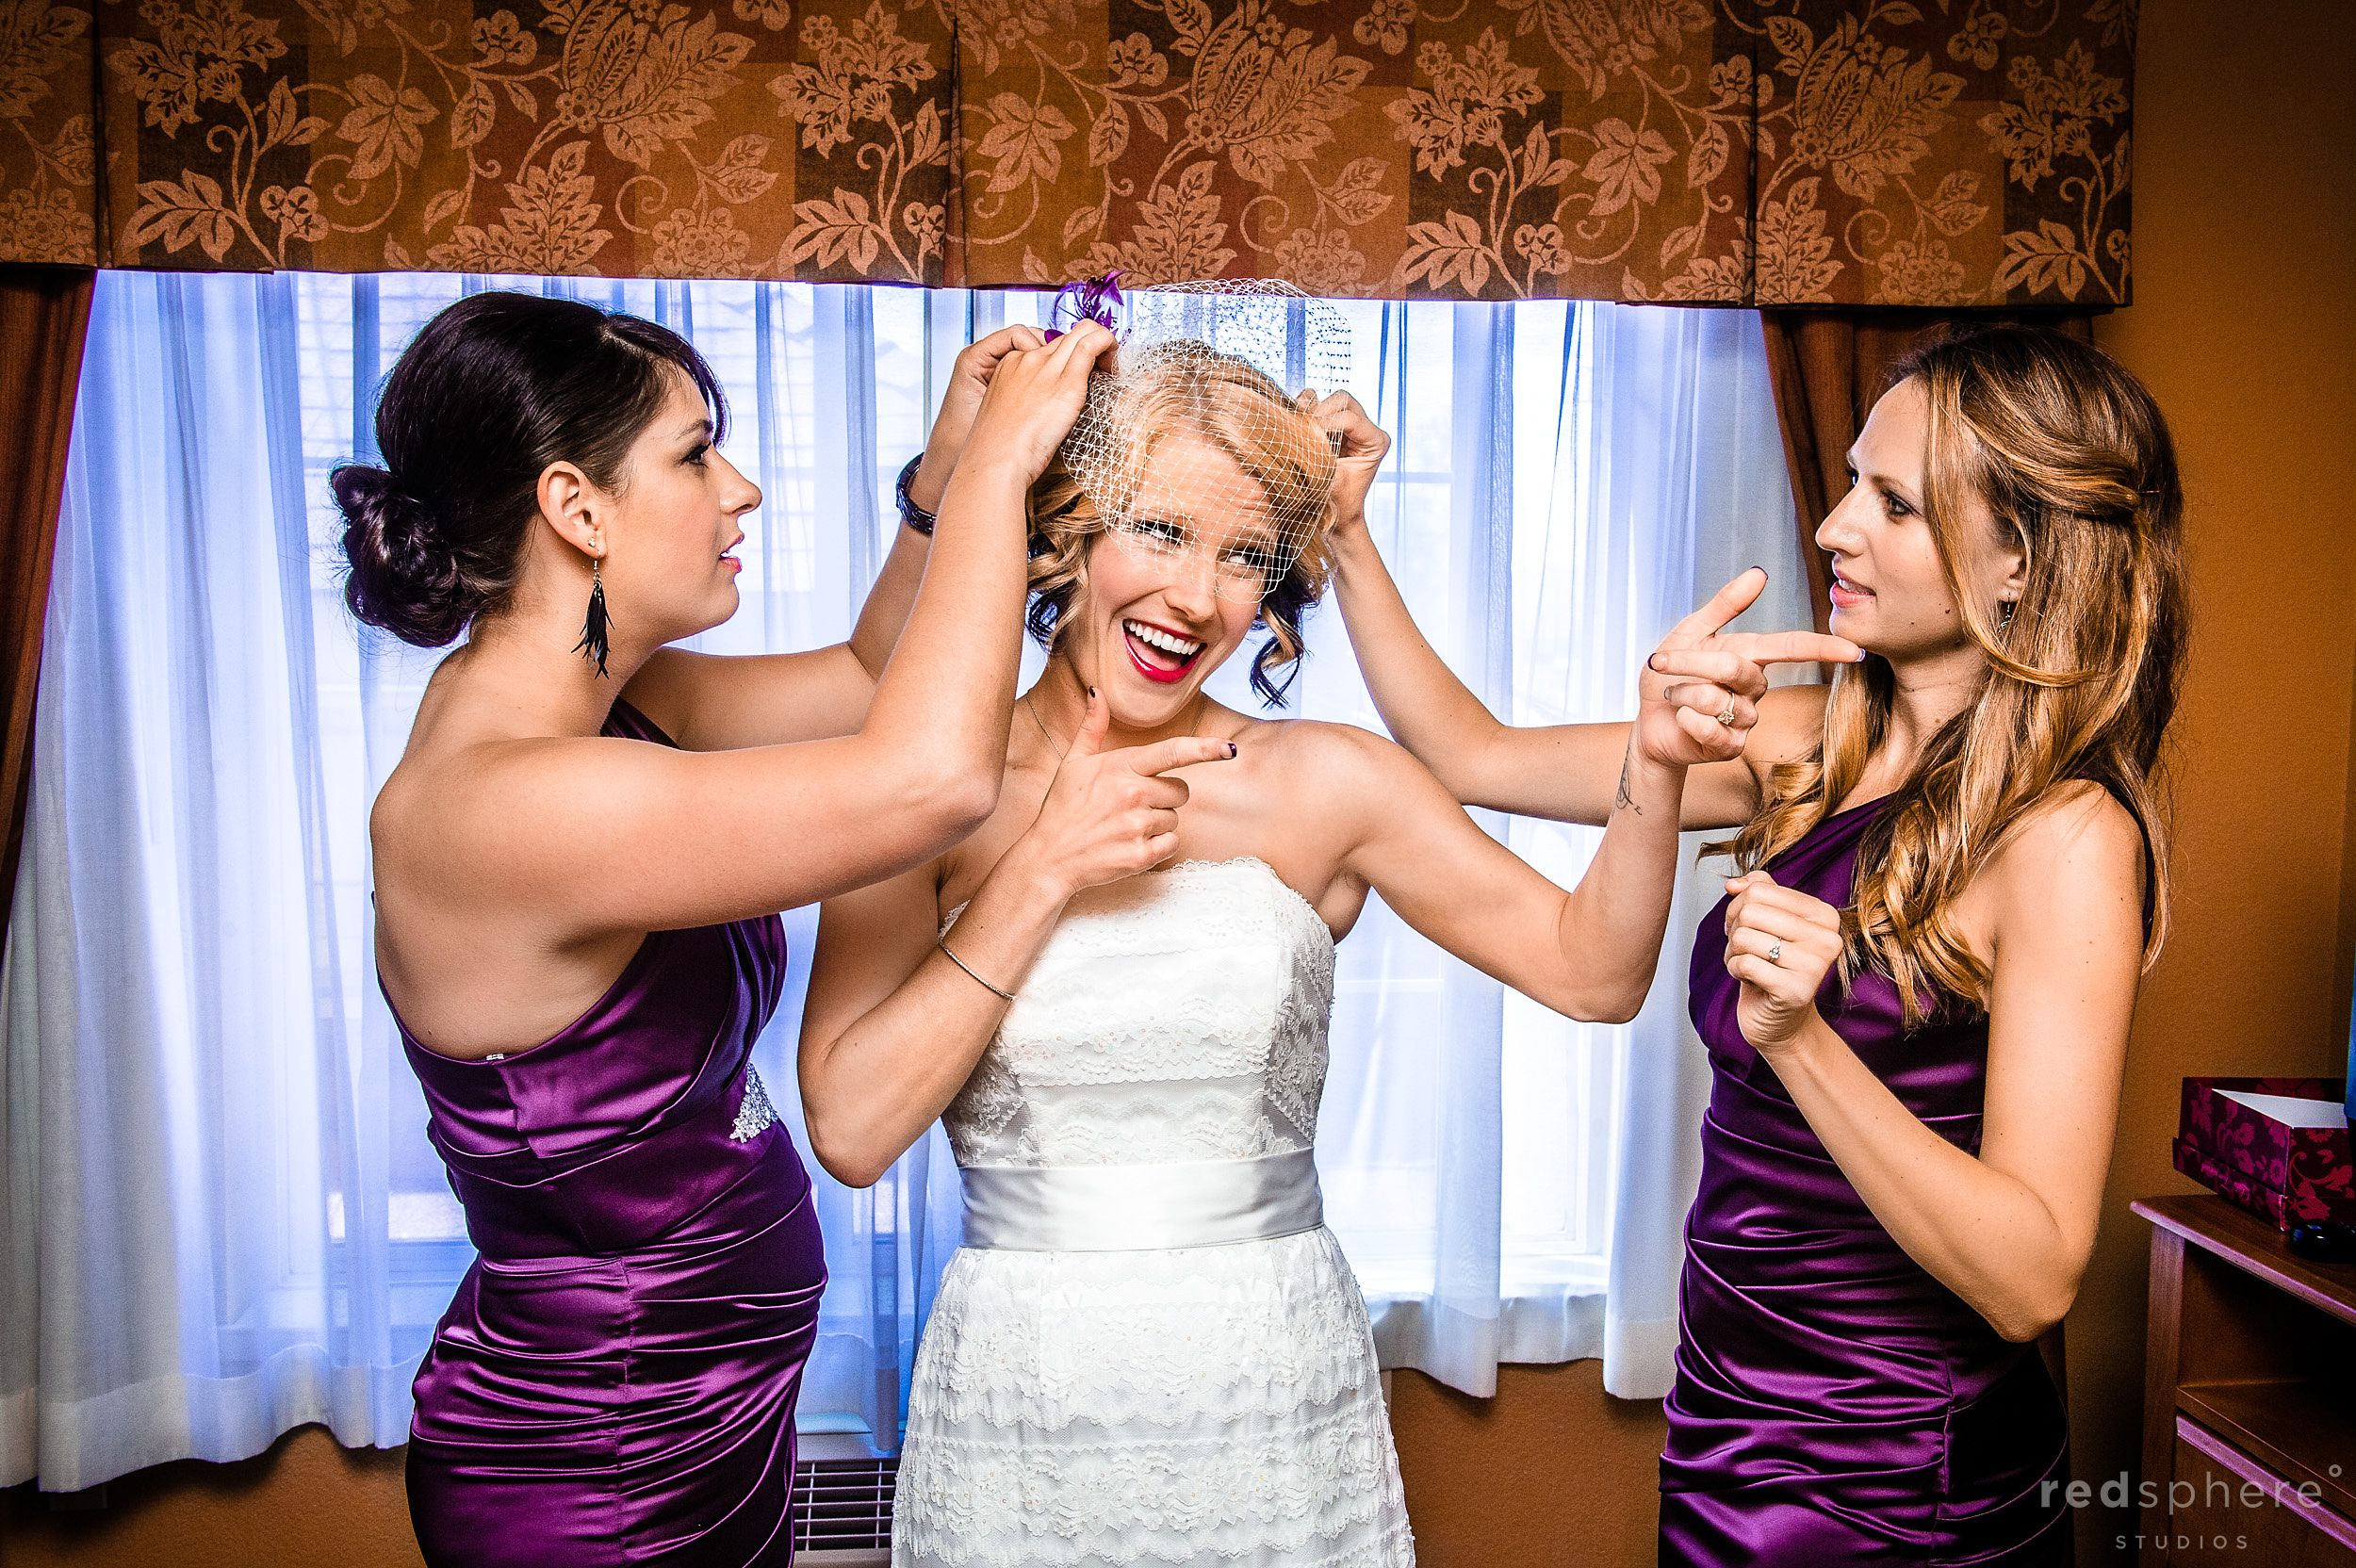 Bridesmaid Fixing Bride's Hair As She Winks at Friends